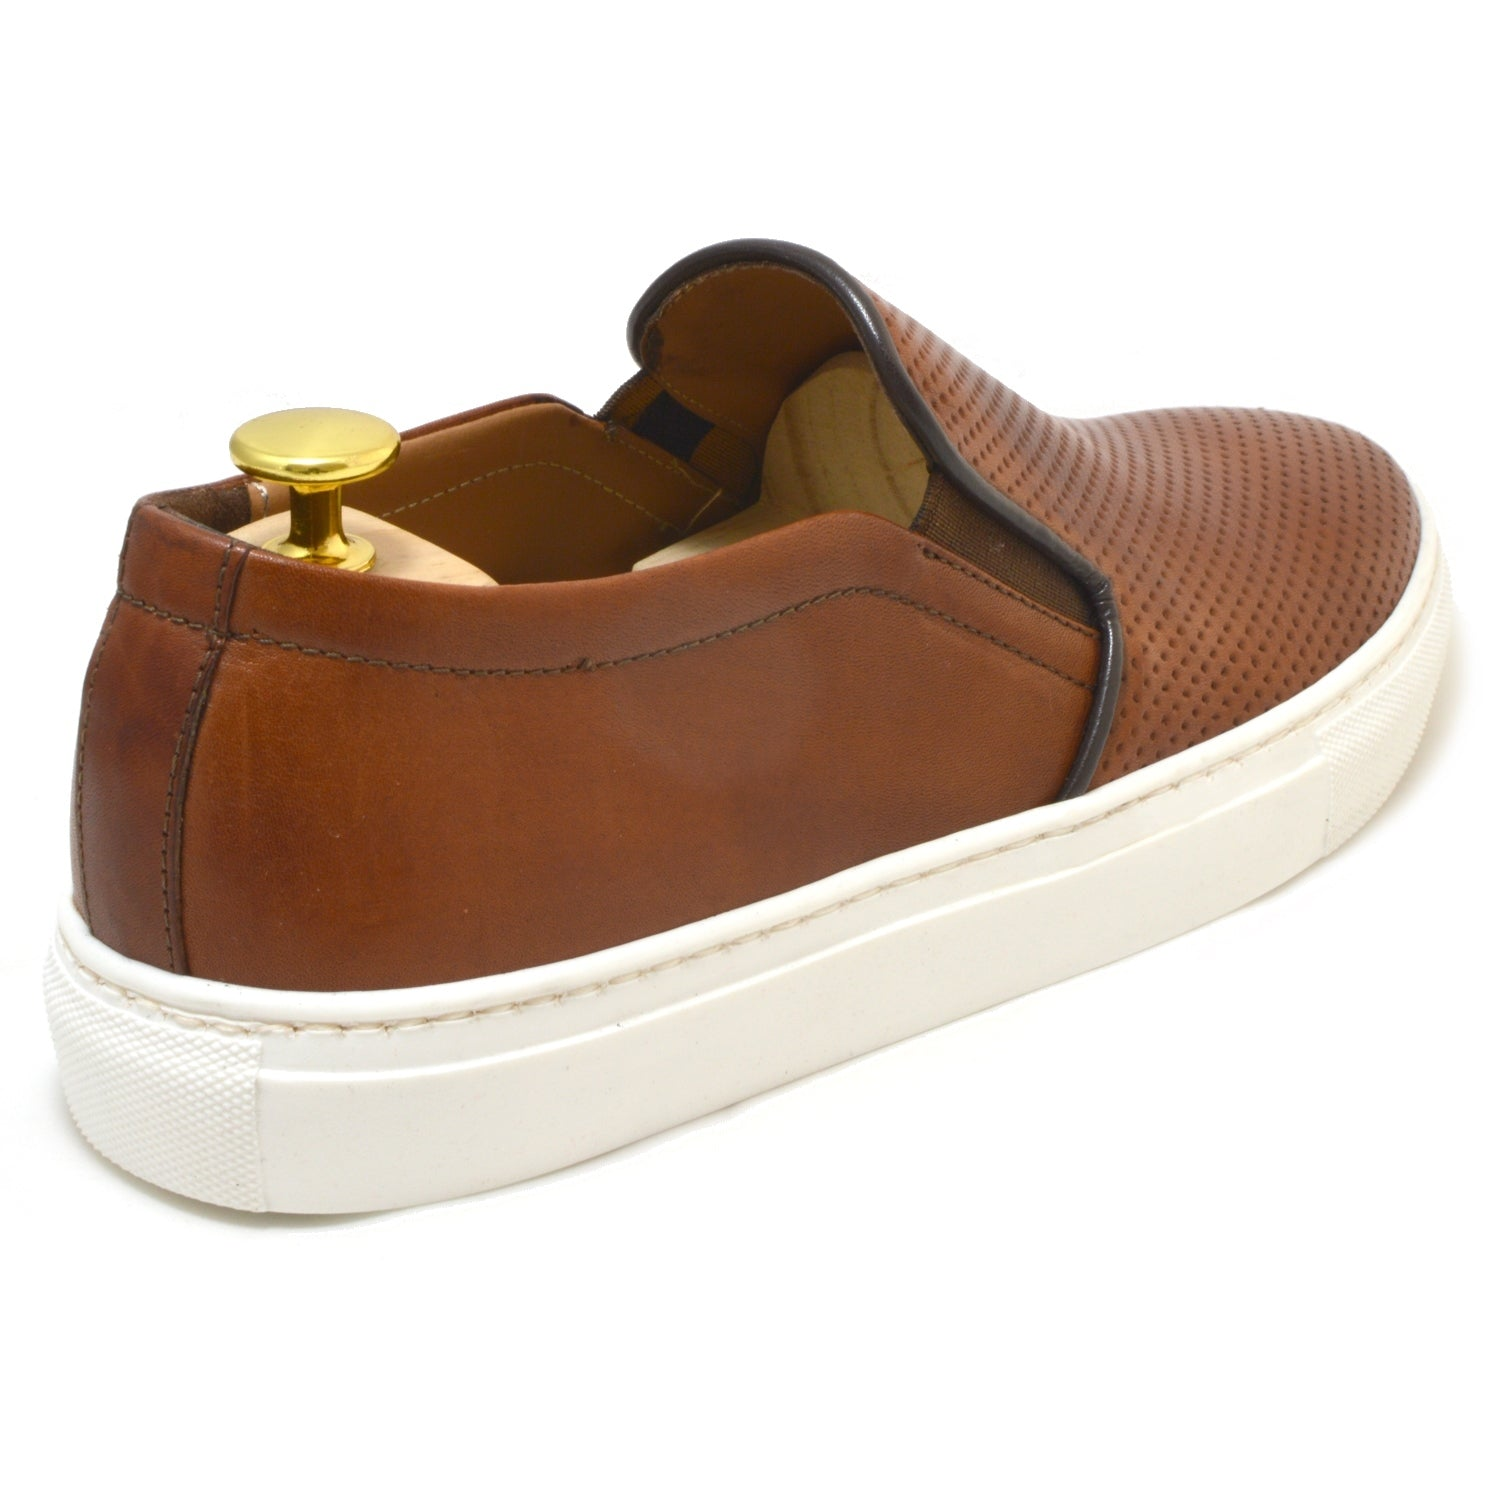 slip-on Ponza, perforated suede leather with white sole, Made in Italy by Ofanto Italy